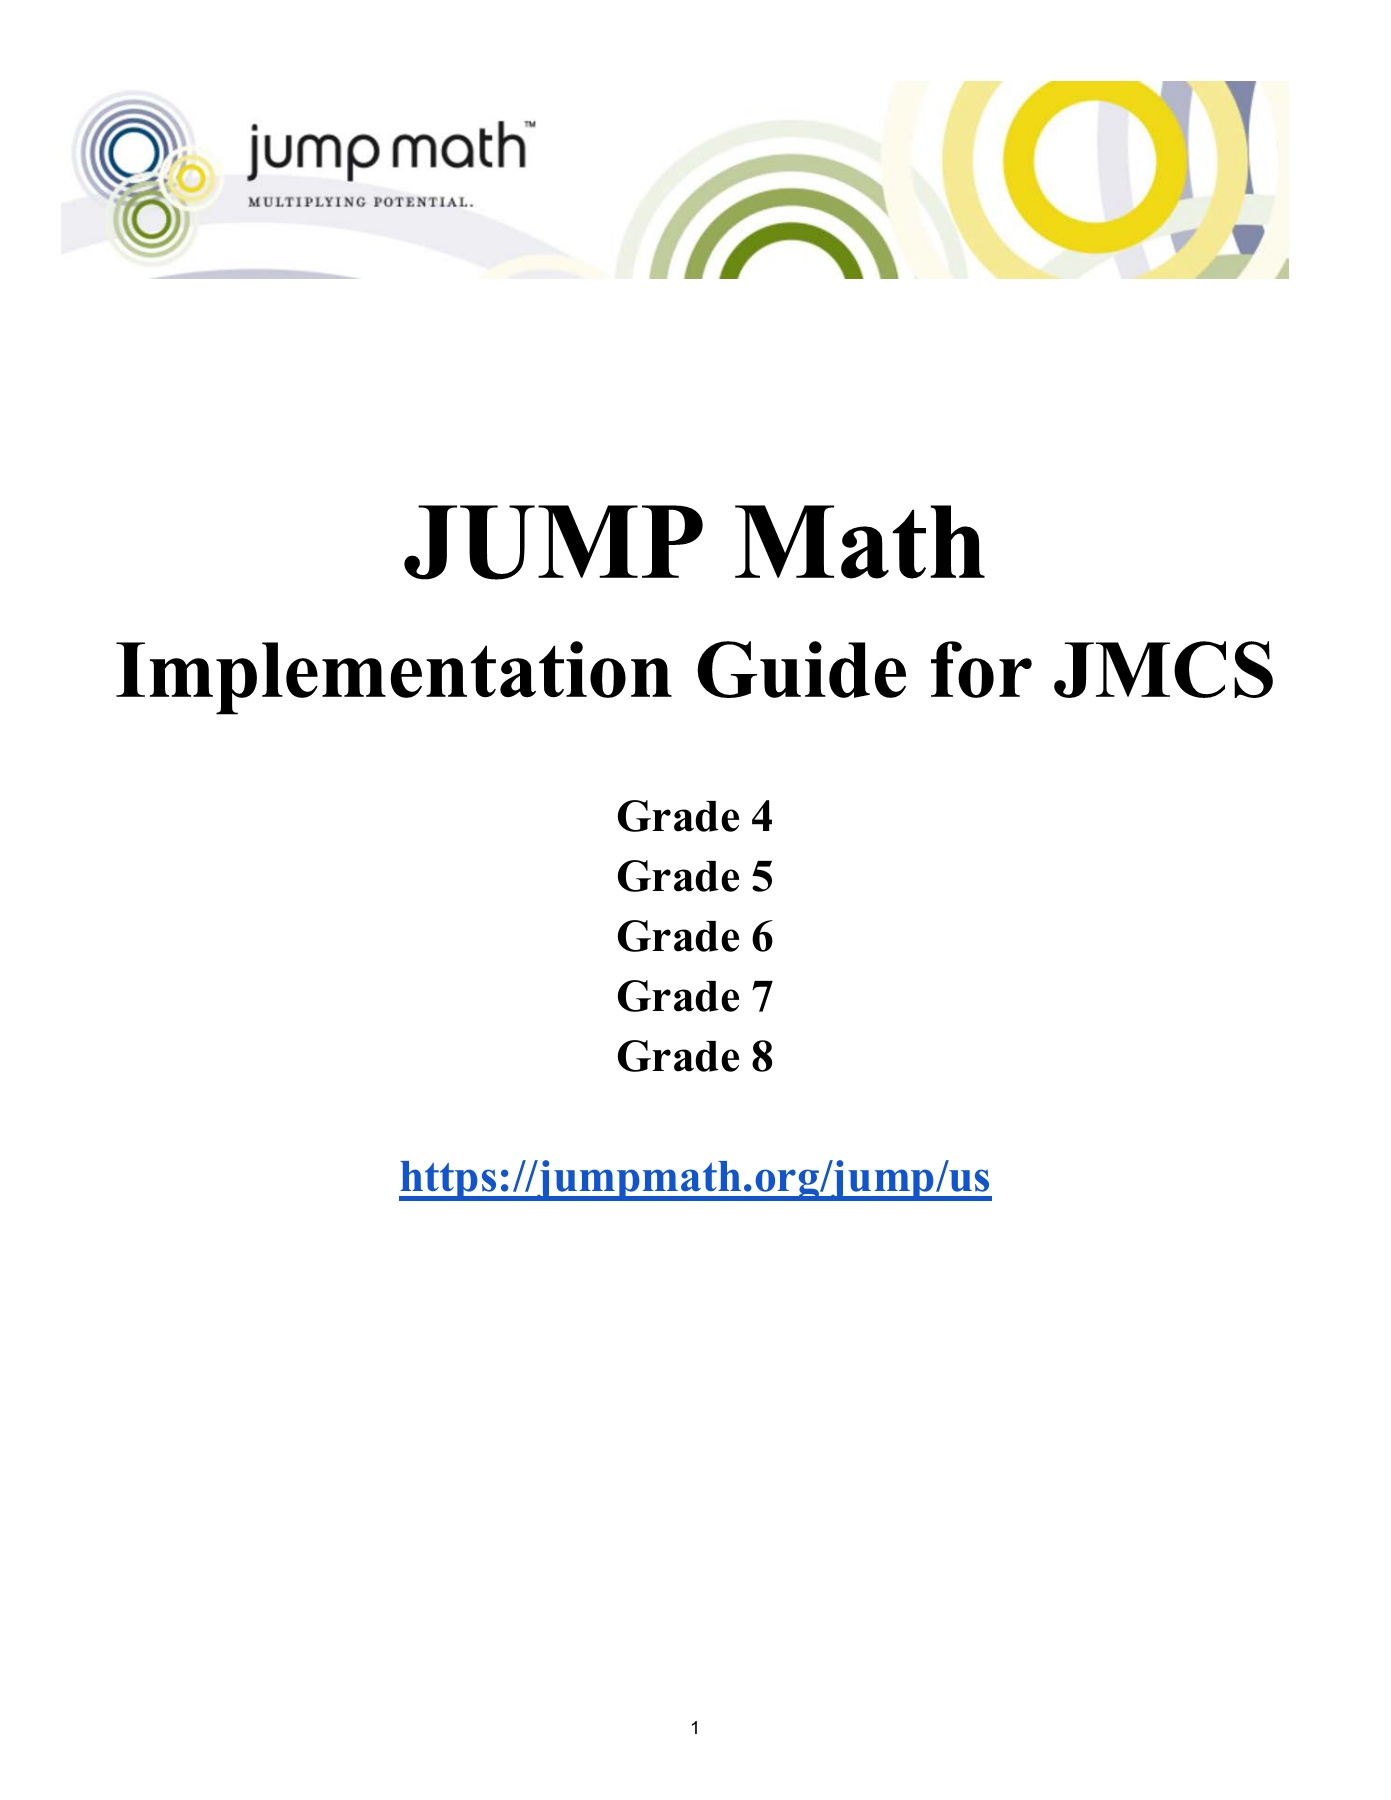 JUMP Math Implementation Guide Pages 1 - 29 - Text Version